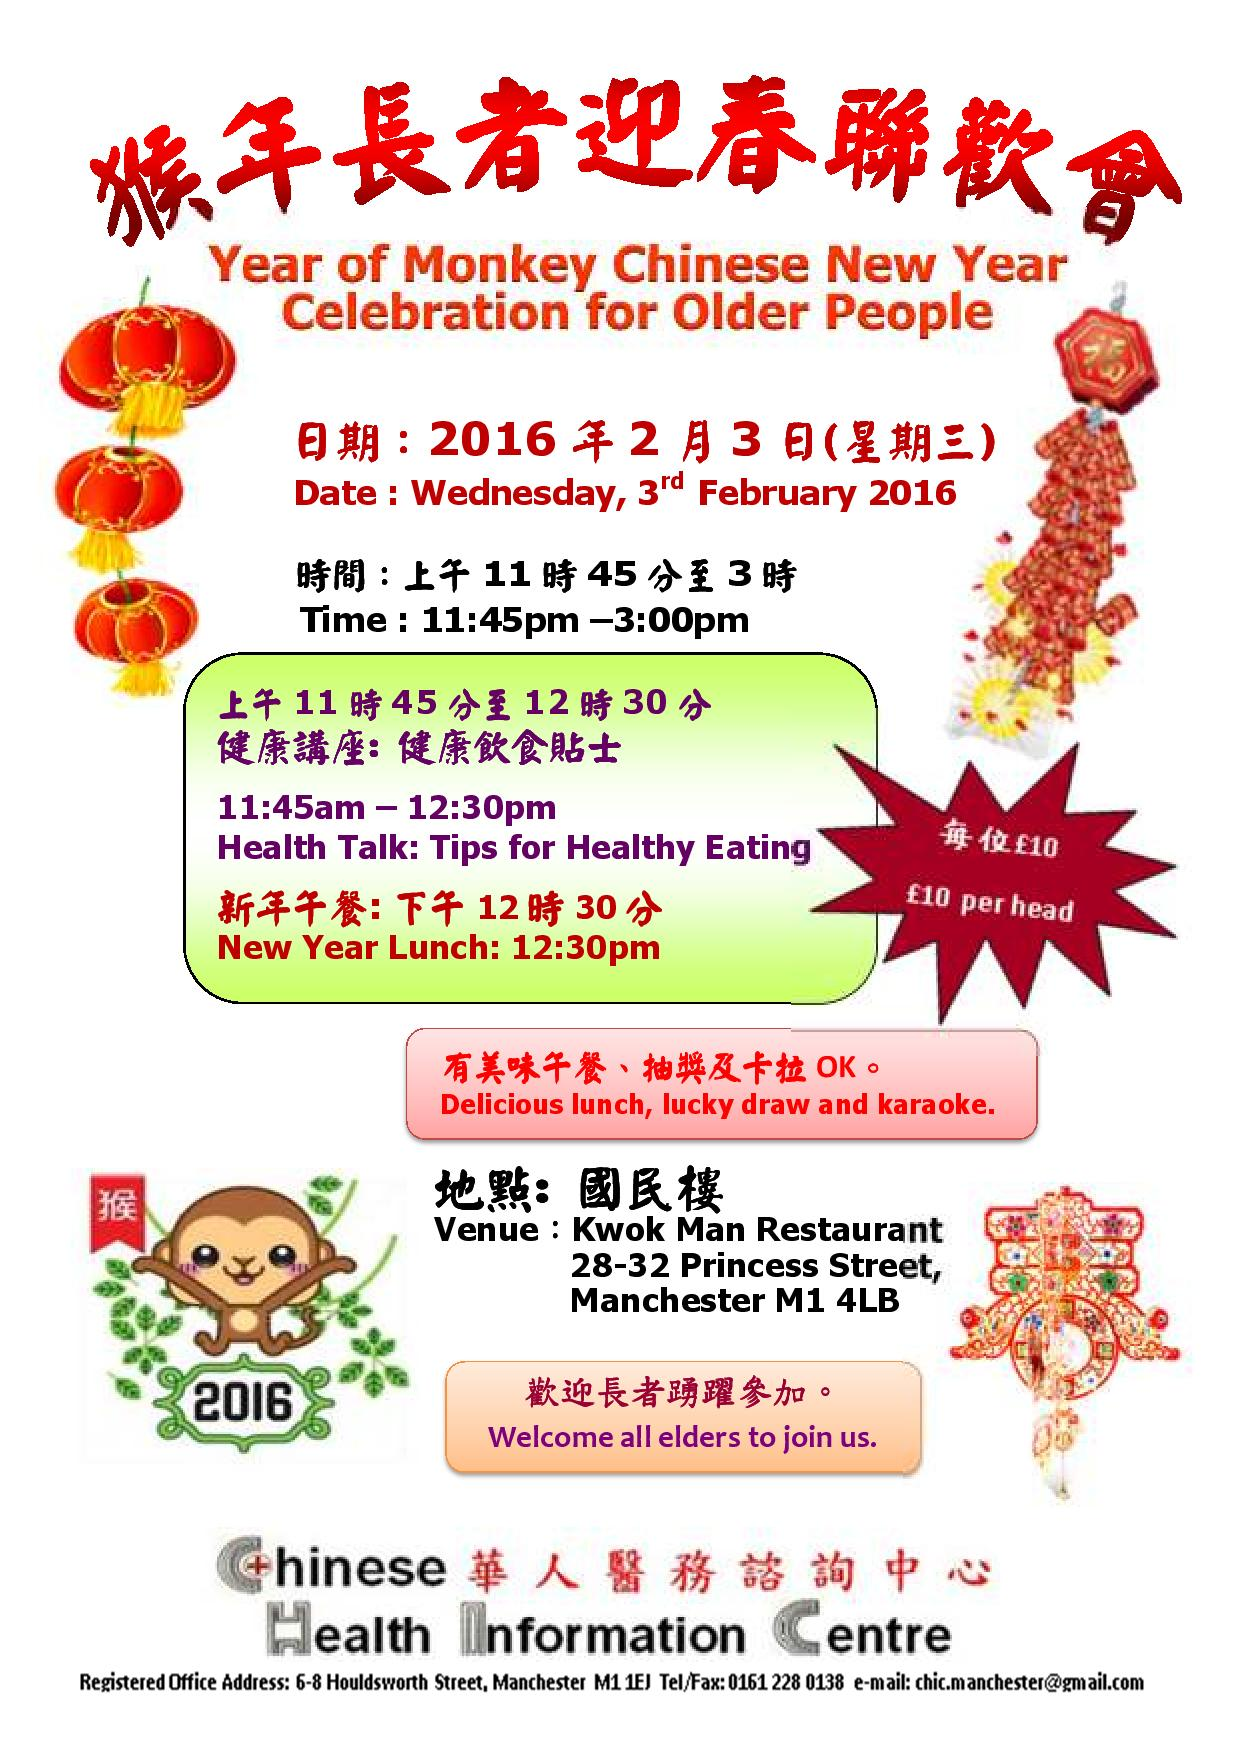 Chinese New Year Celebrations for Older People